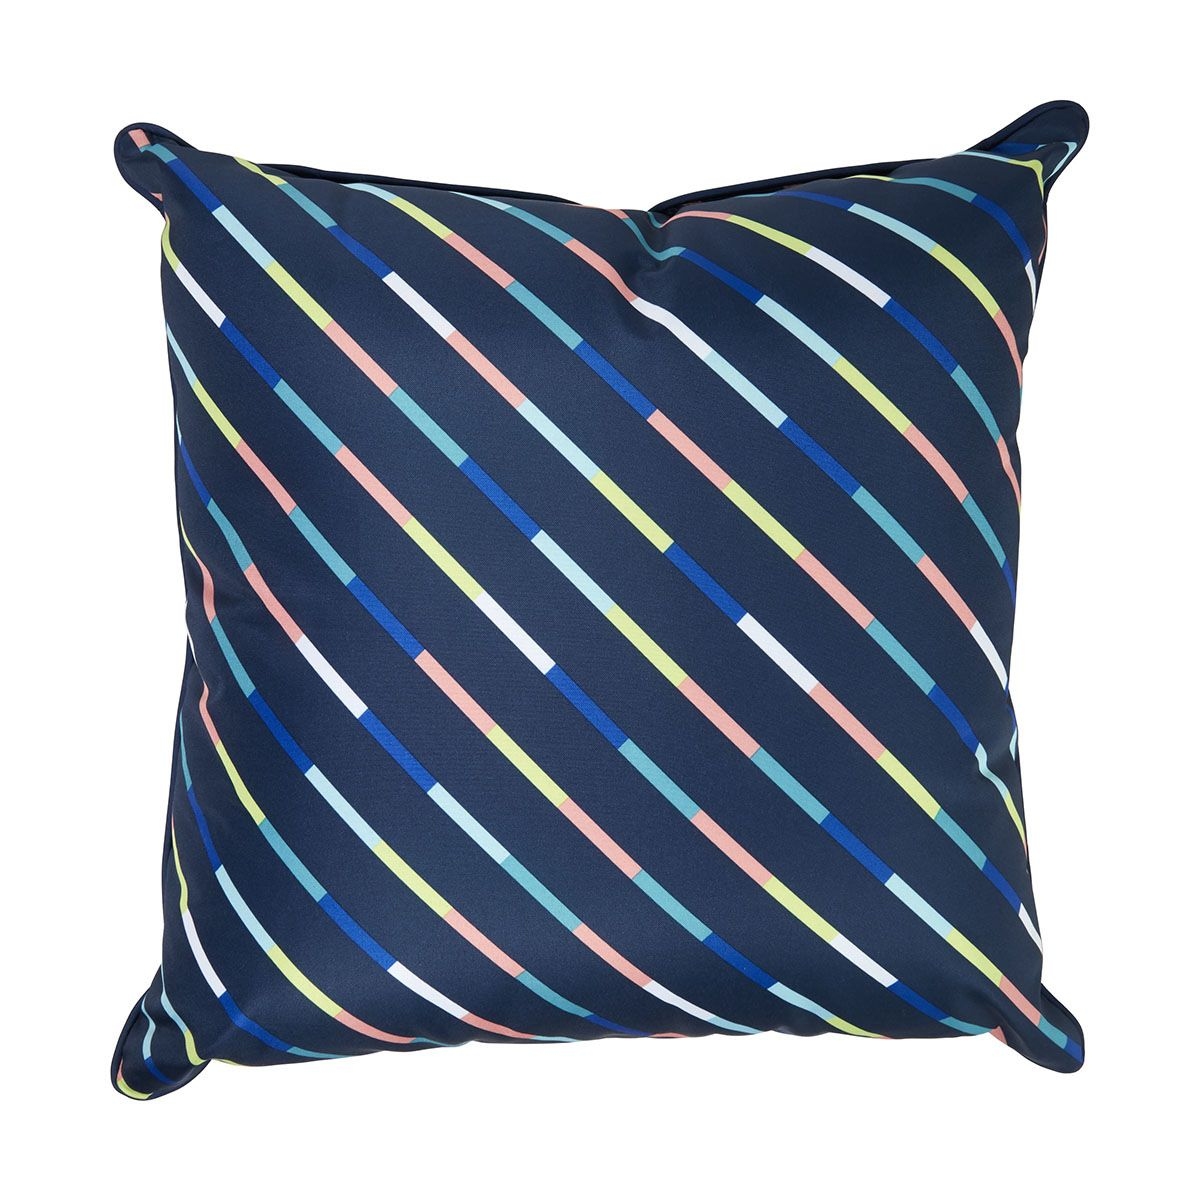 50cm Stripe Outdoor Cushion KmartNZ Outdoor cushions